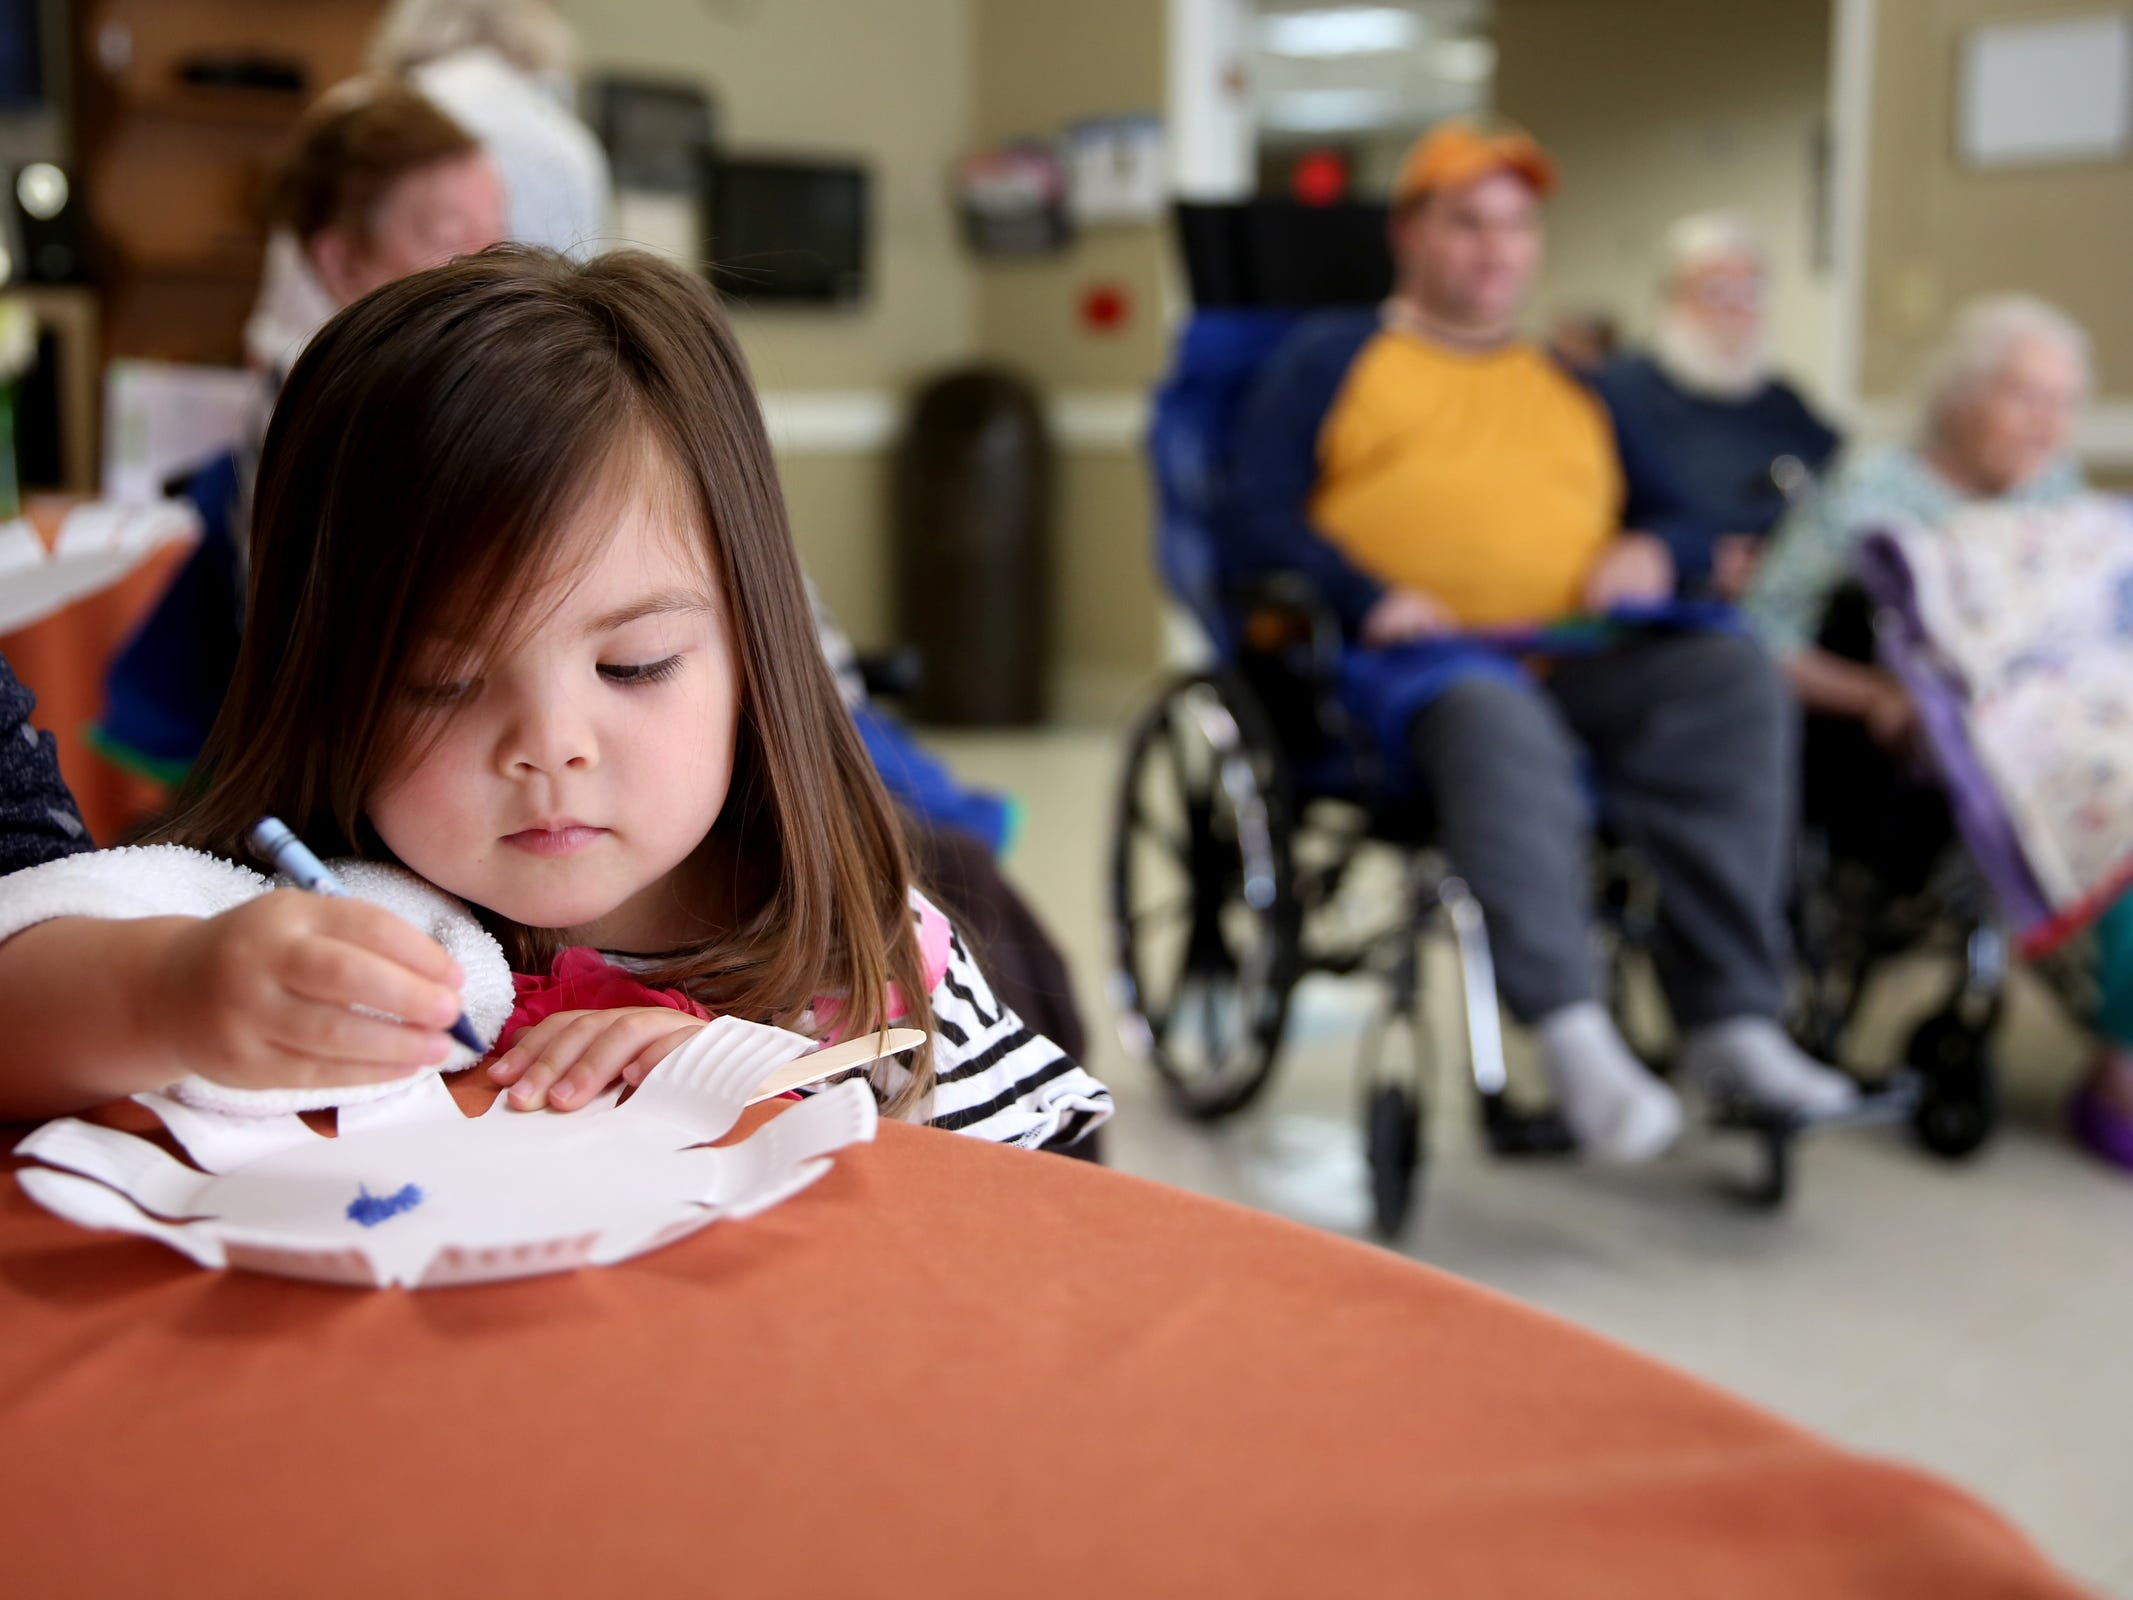 "Zora Thaggard, 3, colors during a visit by the Friendship Brigade, a group that focuses on intergenerational programming, at Avamere Transitional Care at Sunnyside in Salem on May 6, 2019. Once a week, ""Storytime at Sunnyside"" brings preschoolers to the seniors for reading, singing, dancing and other playtime activities."